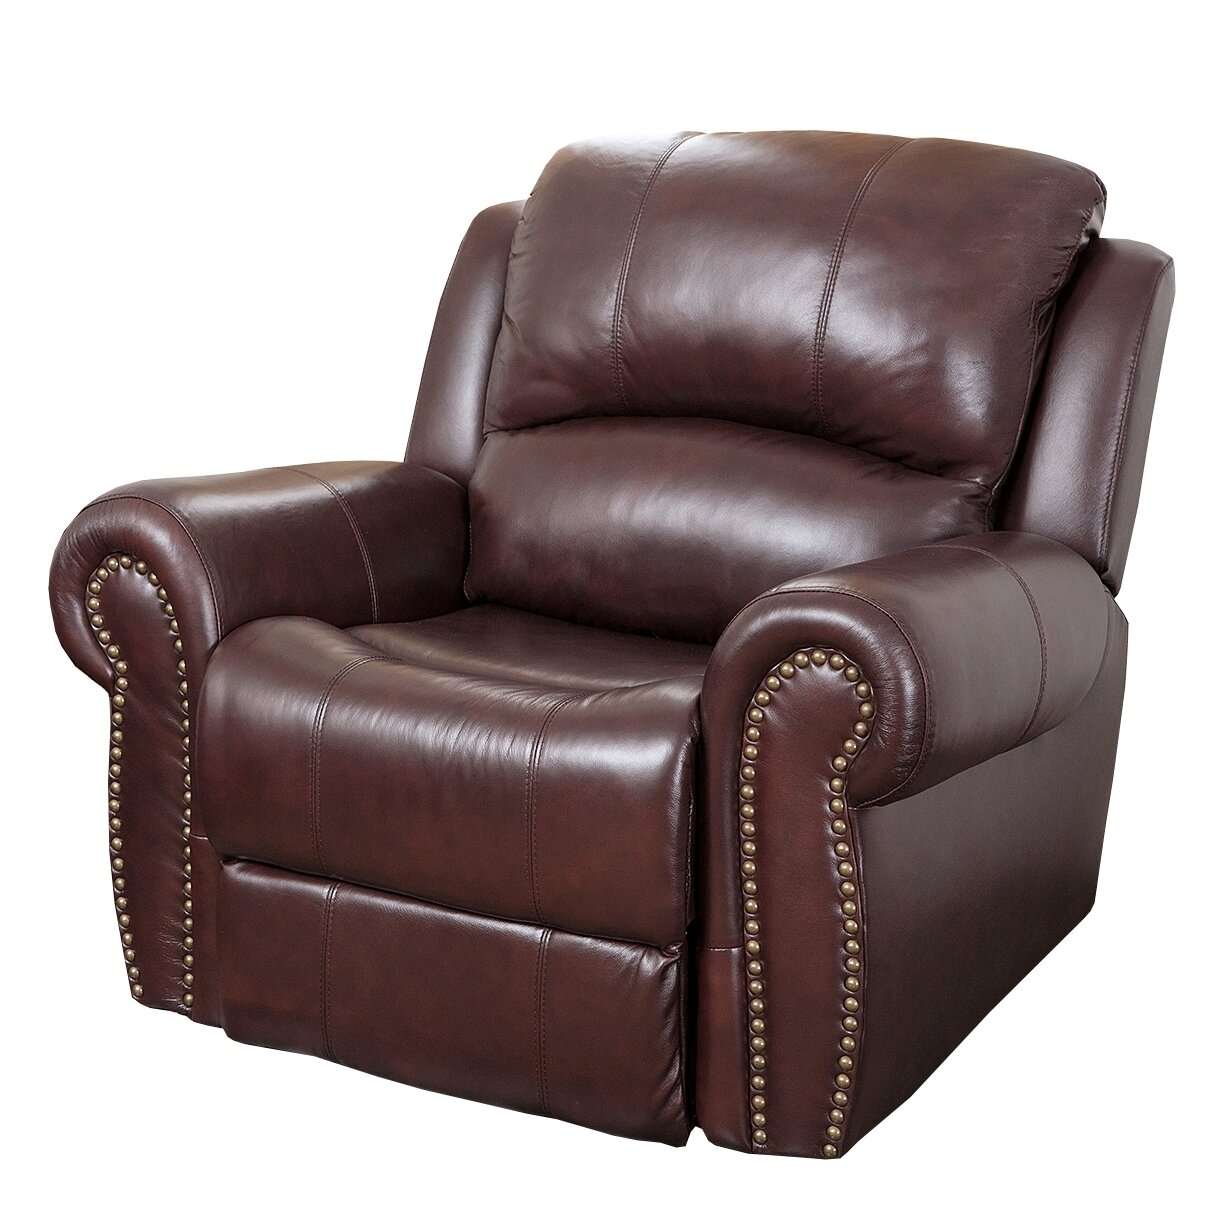 abbyson living sedona leather chaise recliner reviews ForAbbyson Living Sedona Leather Chaise Recliner